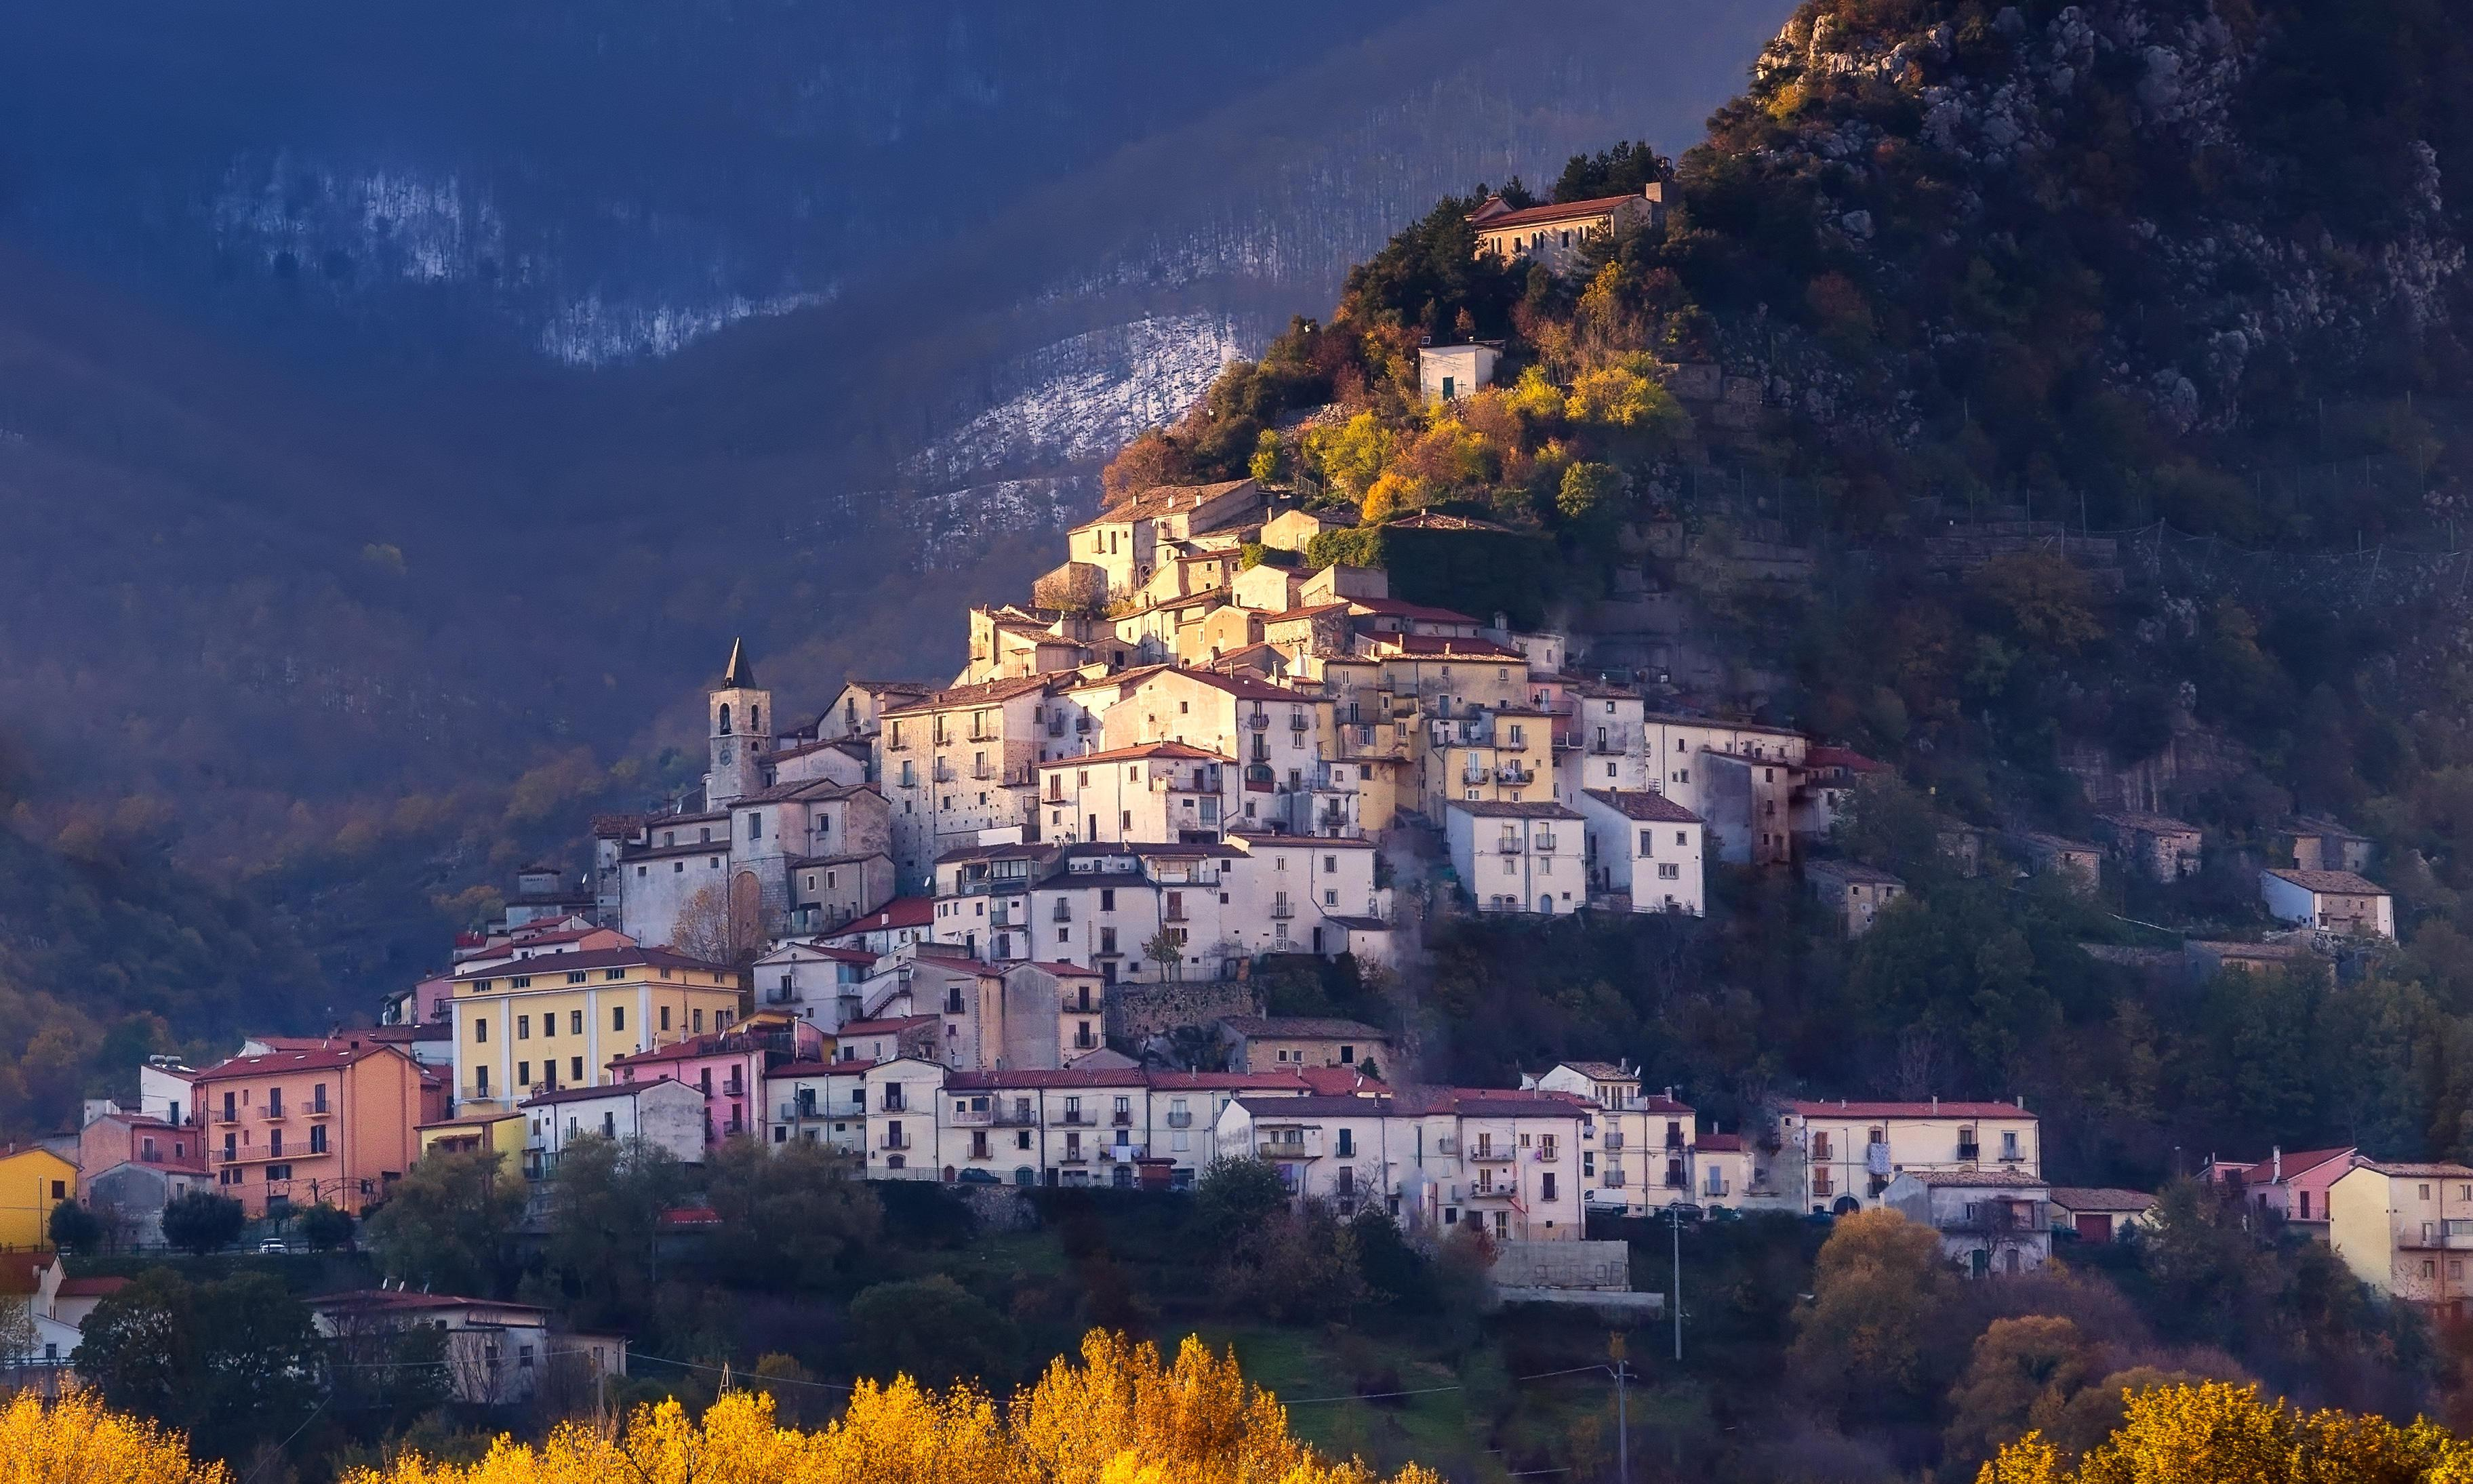 Underpopulated Italian region offers visitors €25,000 to move in